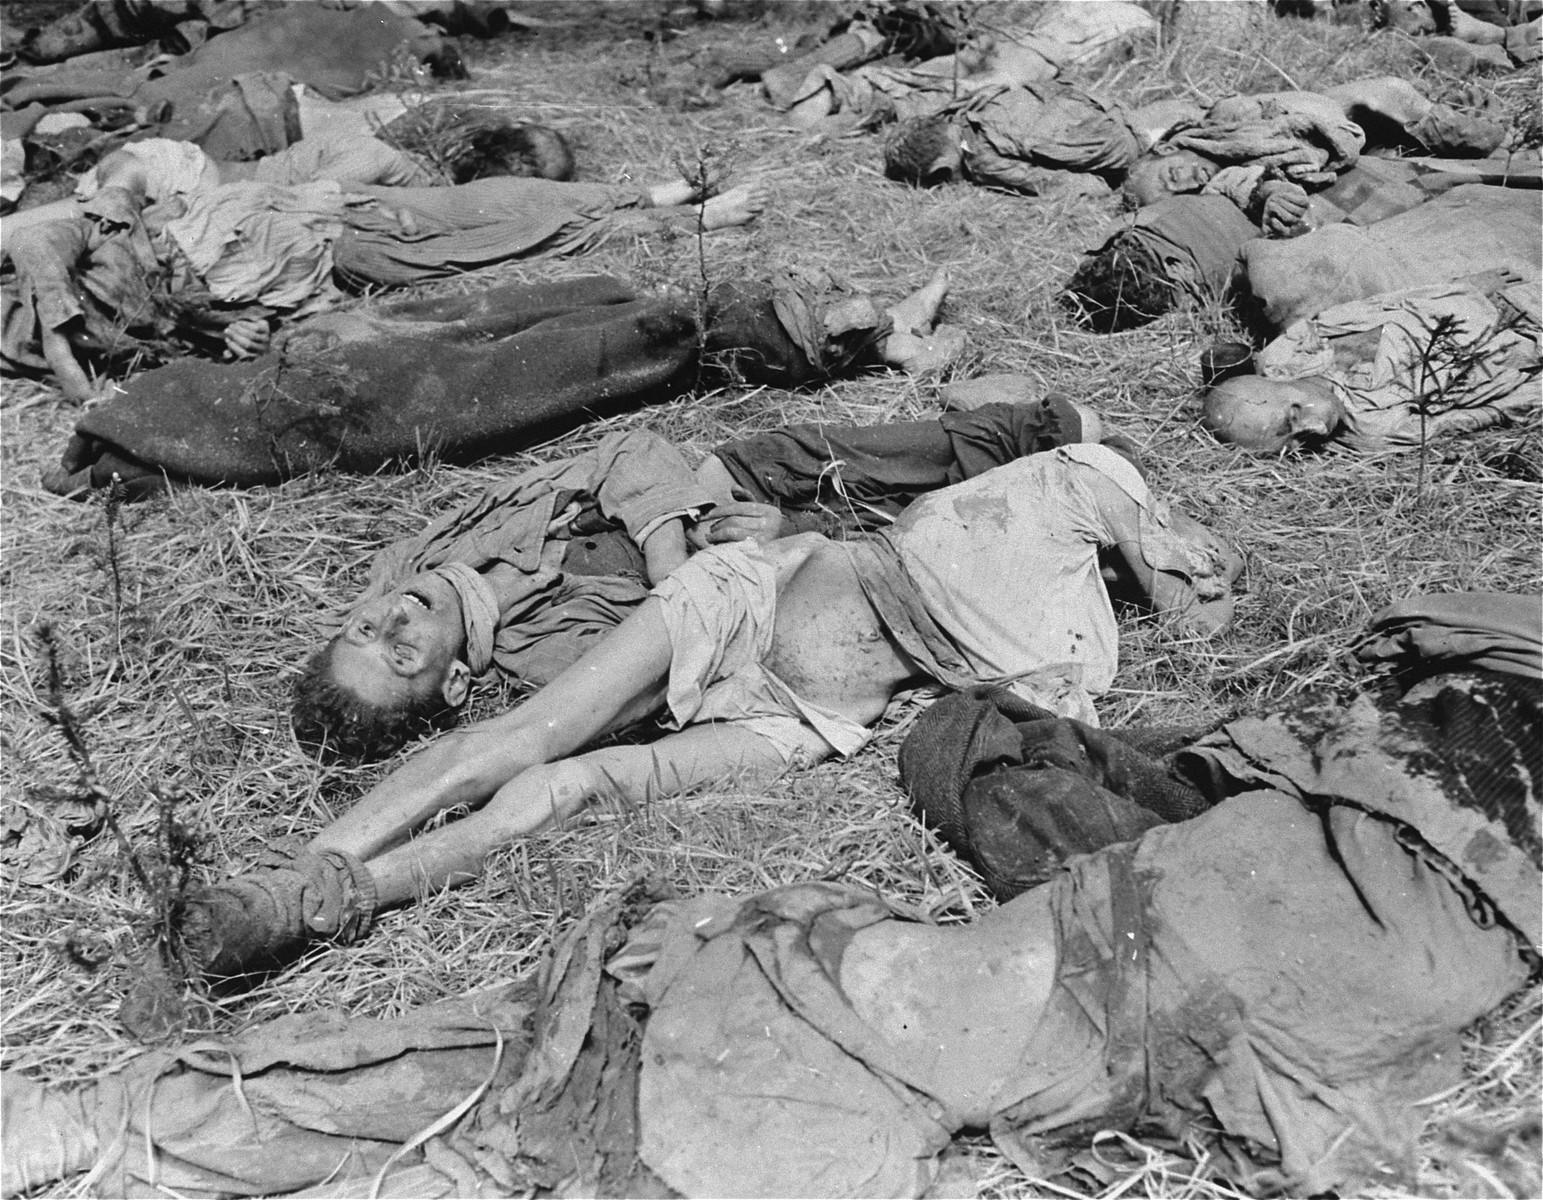 The bodies of prisoners shot by SS guards in Gunskirchen prior to the liberation of the camp by American soldiers.